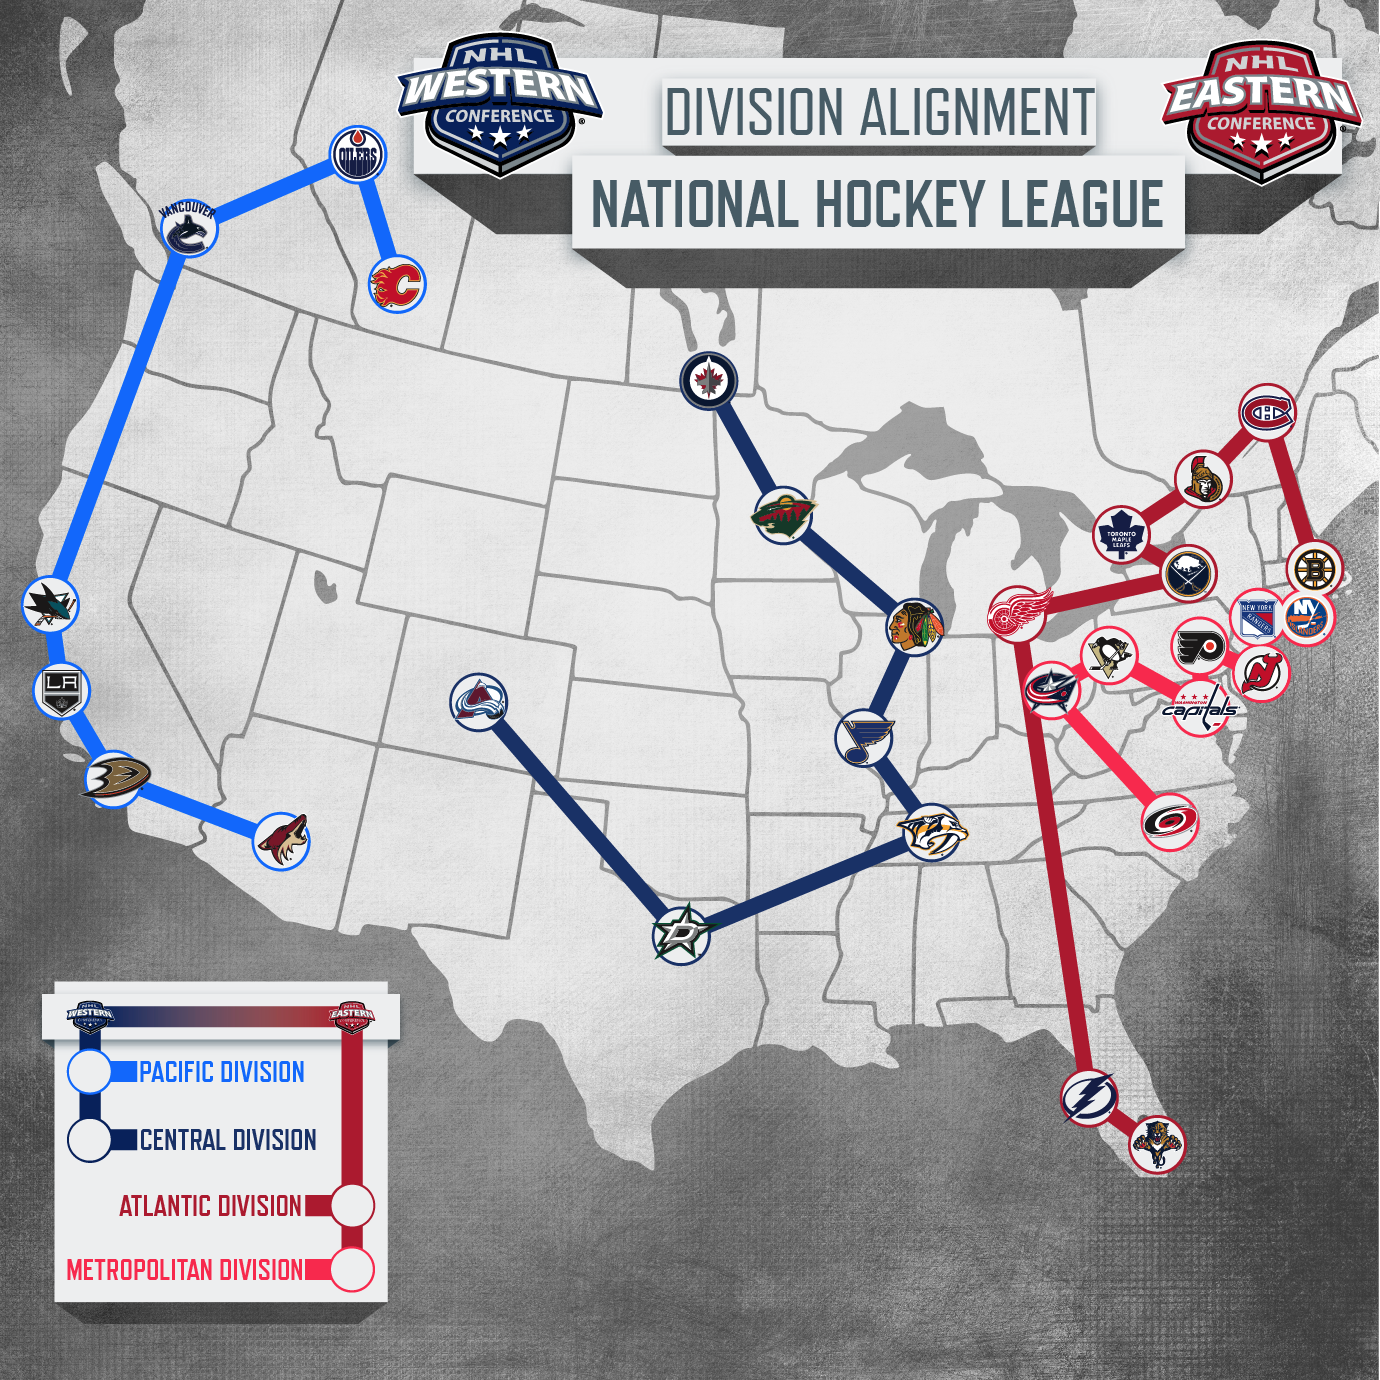 NHL_Division_Alignment_Map.jpg